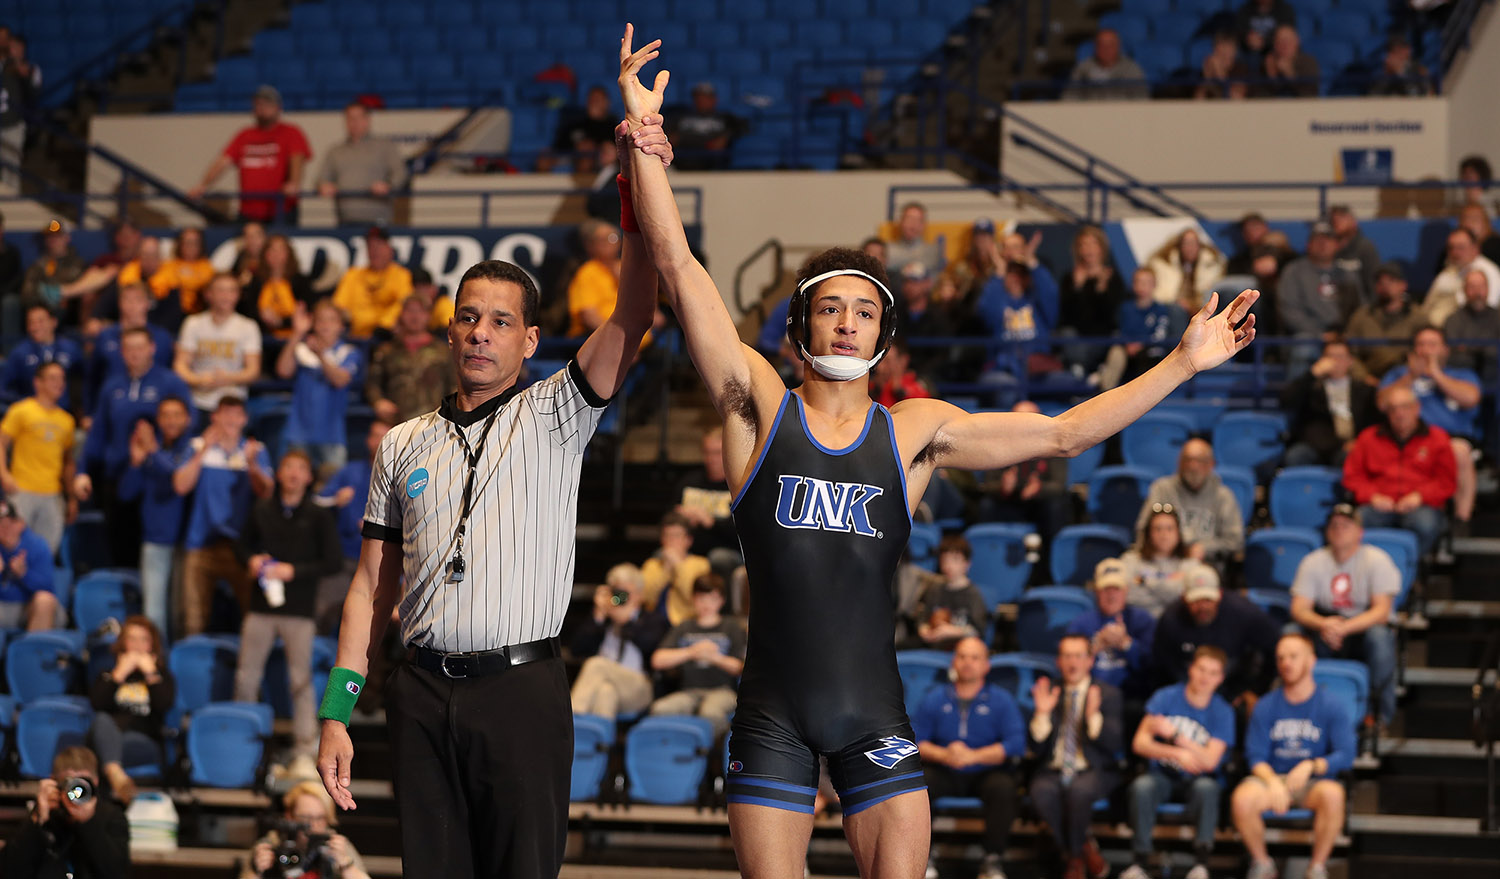 Wesley Dawkins, a redshirt senior from Lincoln, is 84-28 in his UNK wrestling career. The two-time All-American and 2019 national runner-up is seeded third at 133 pounds for this week's NCAA Division II Wrestling Championships. (Photo by Corbey R. Dorsey, UNK Athletics)